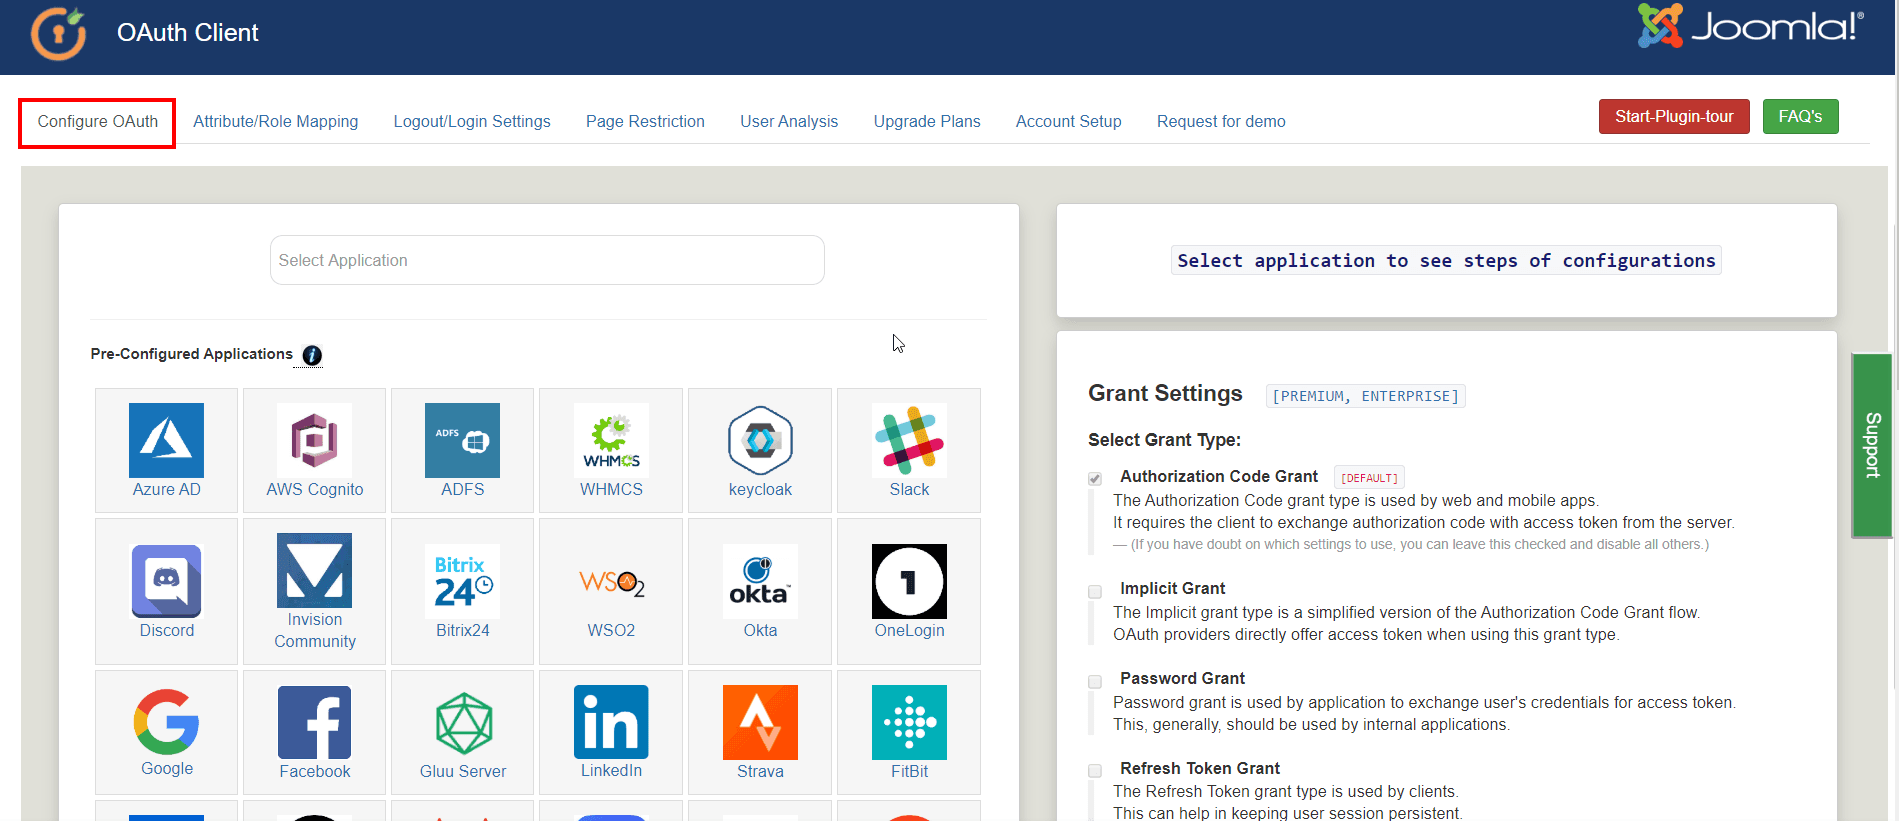 Joomla OAuth Client Plugin - Configure OAuth